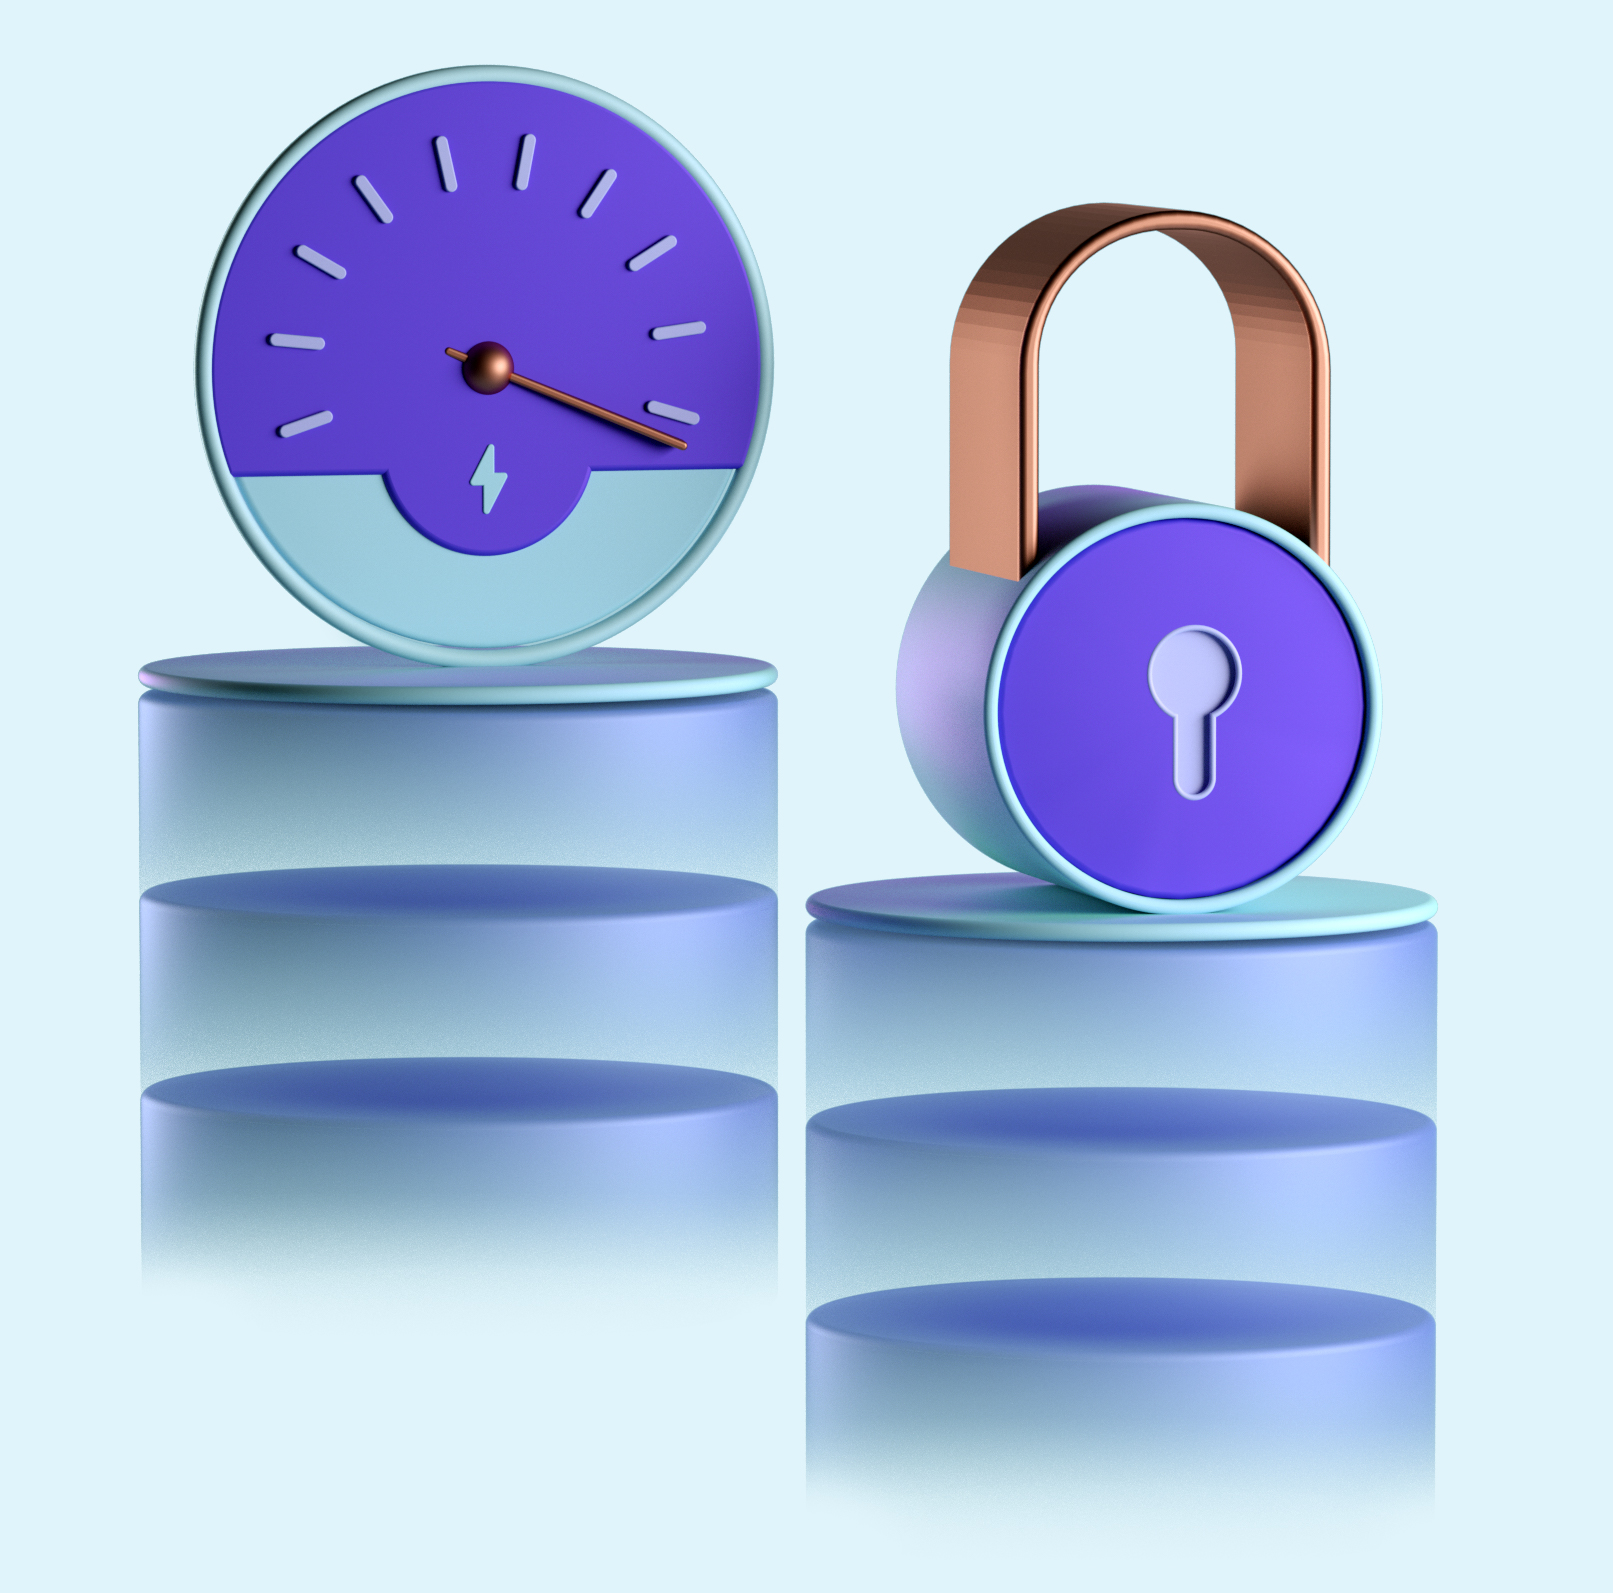 Balance security and performance